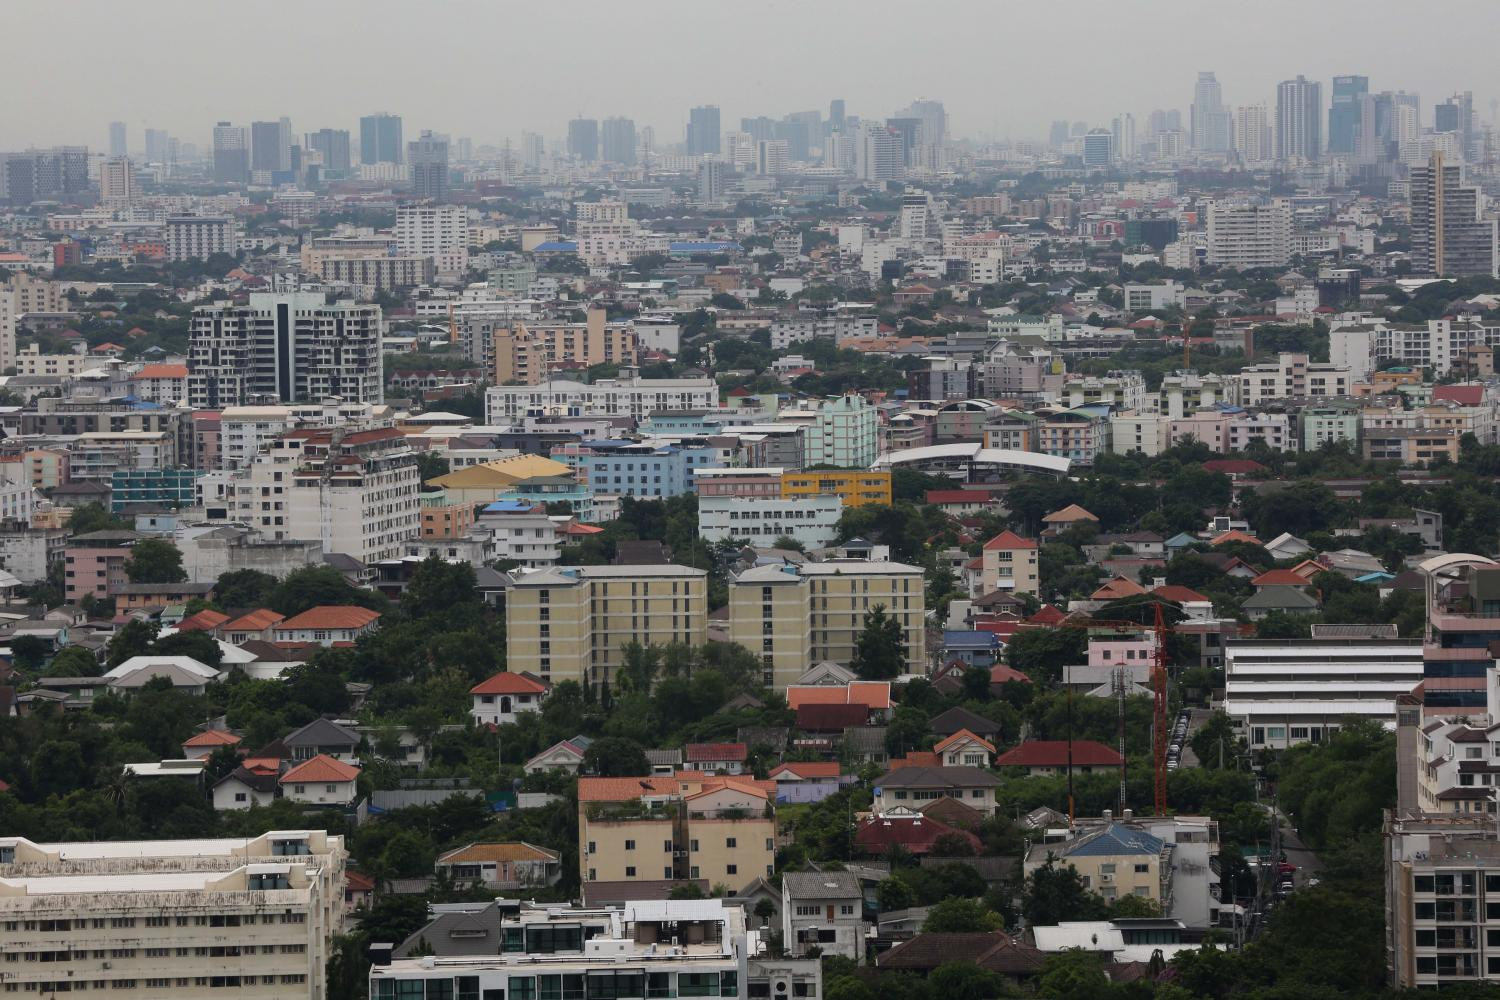 According to the Real Estate Information Center, the decrease in land price index in greater Bangkok is due to the negative impacts from the Covid-19 outbreak. (Photo by Pattarachai Preechapanich)